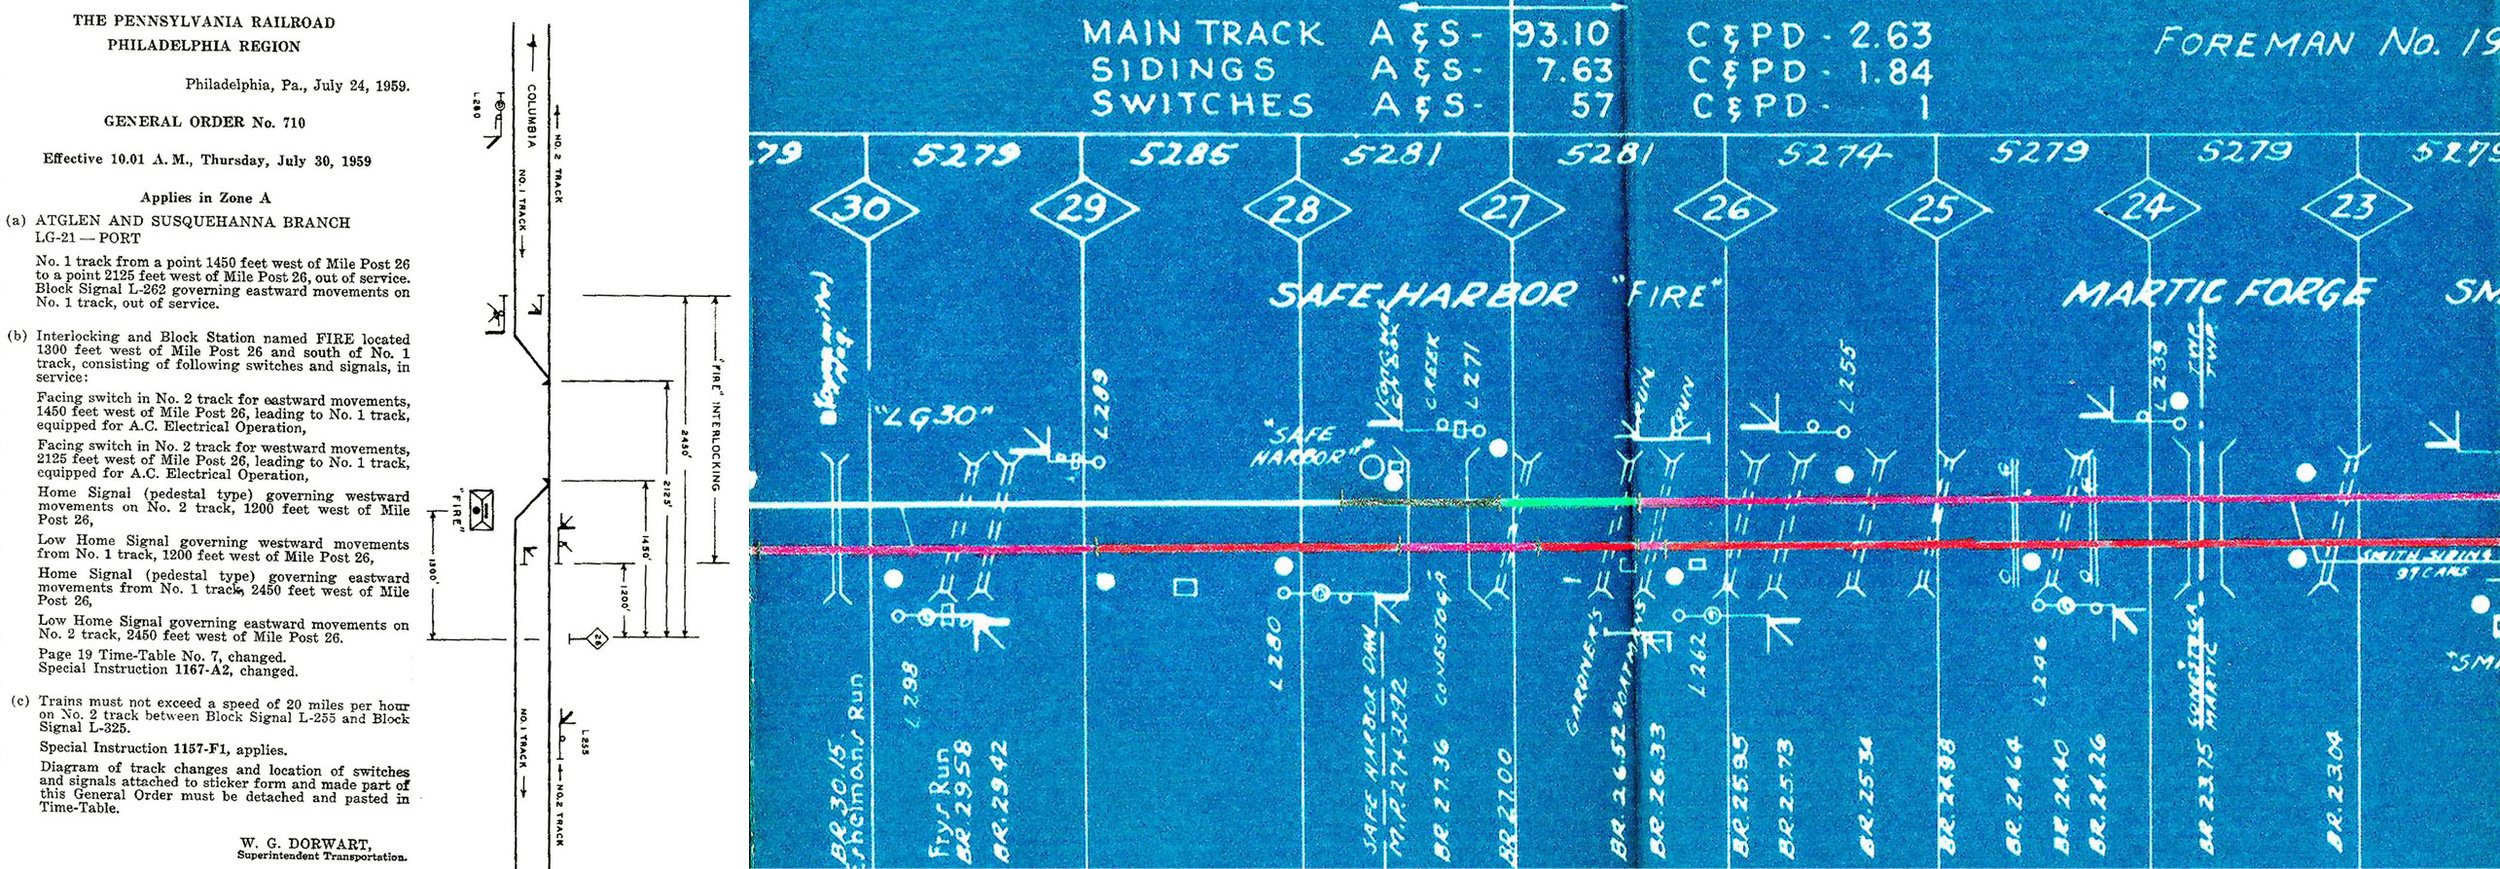 Annotated track chart and General Order No. 710 effective July 30th, 1959 outlining the implementation of temporary block station Fire, Documents from the late H. Wayne Frey courtesy of Abram Burnett.